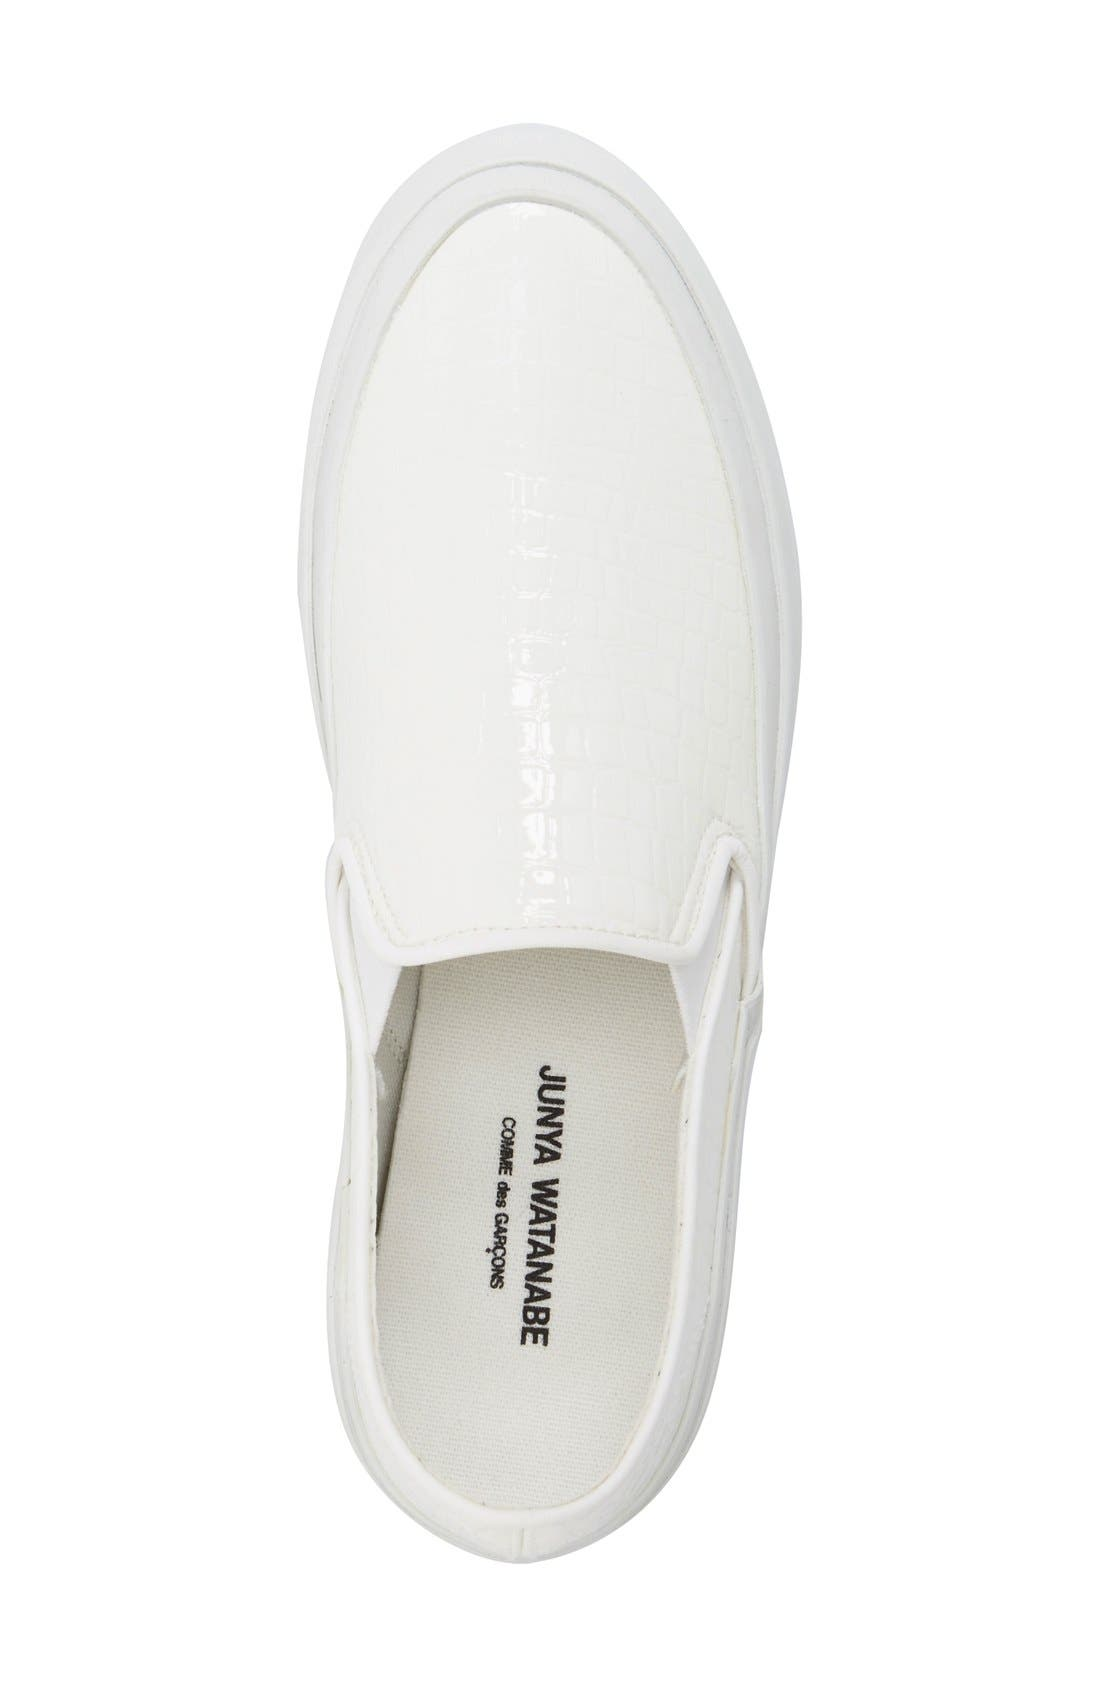 Slip-On Sneaker,                             Alternate thumbnail 3, color,                             White